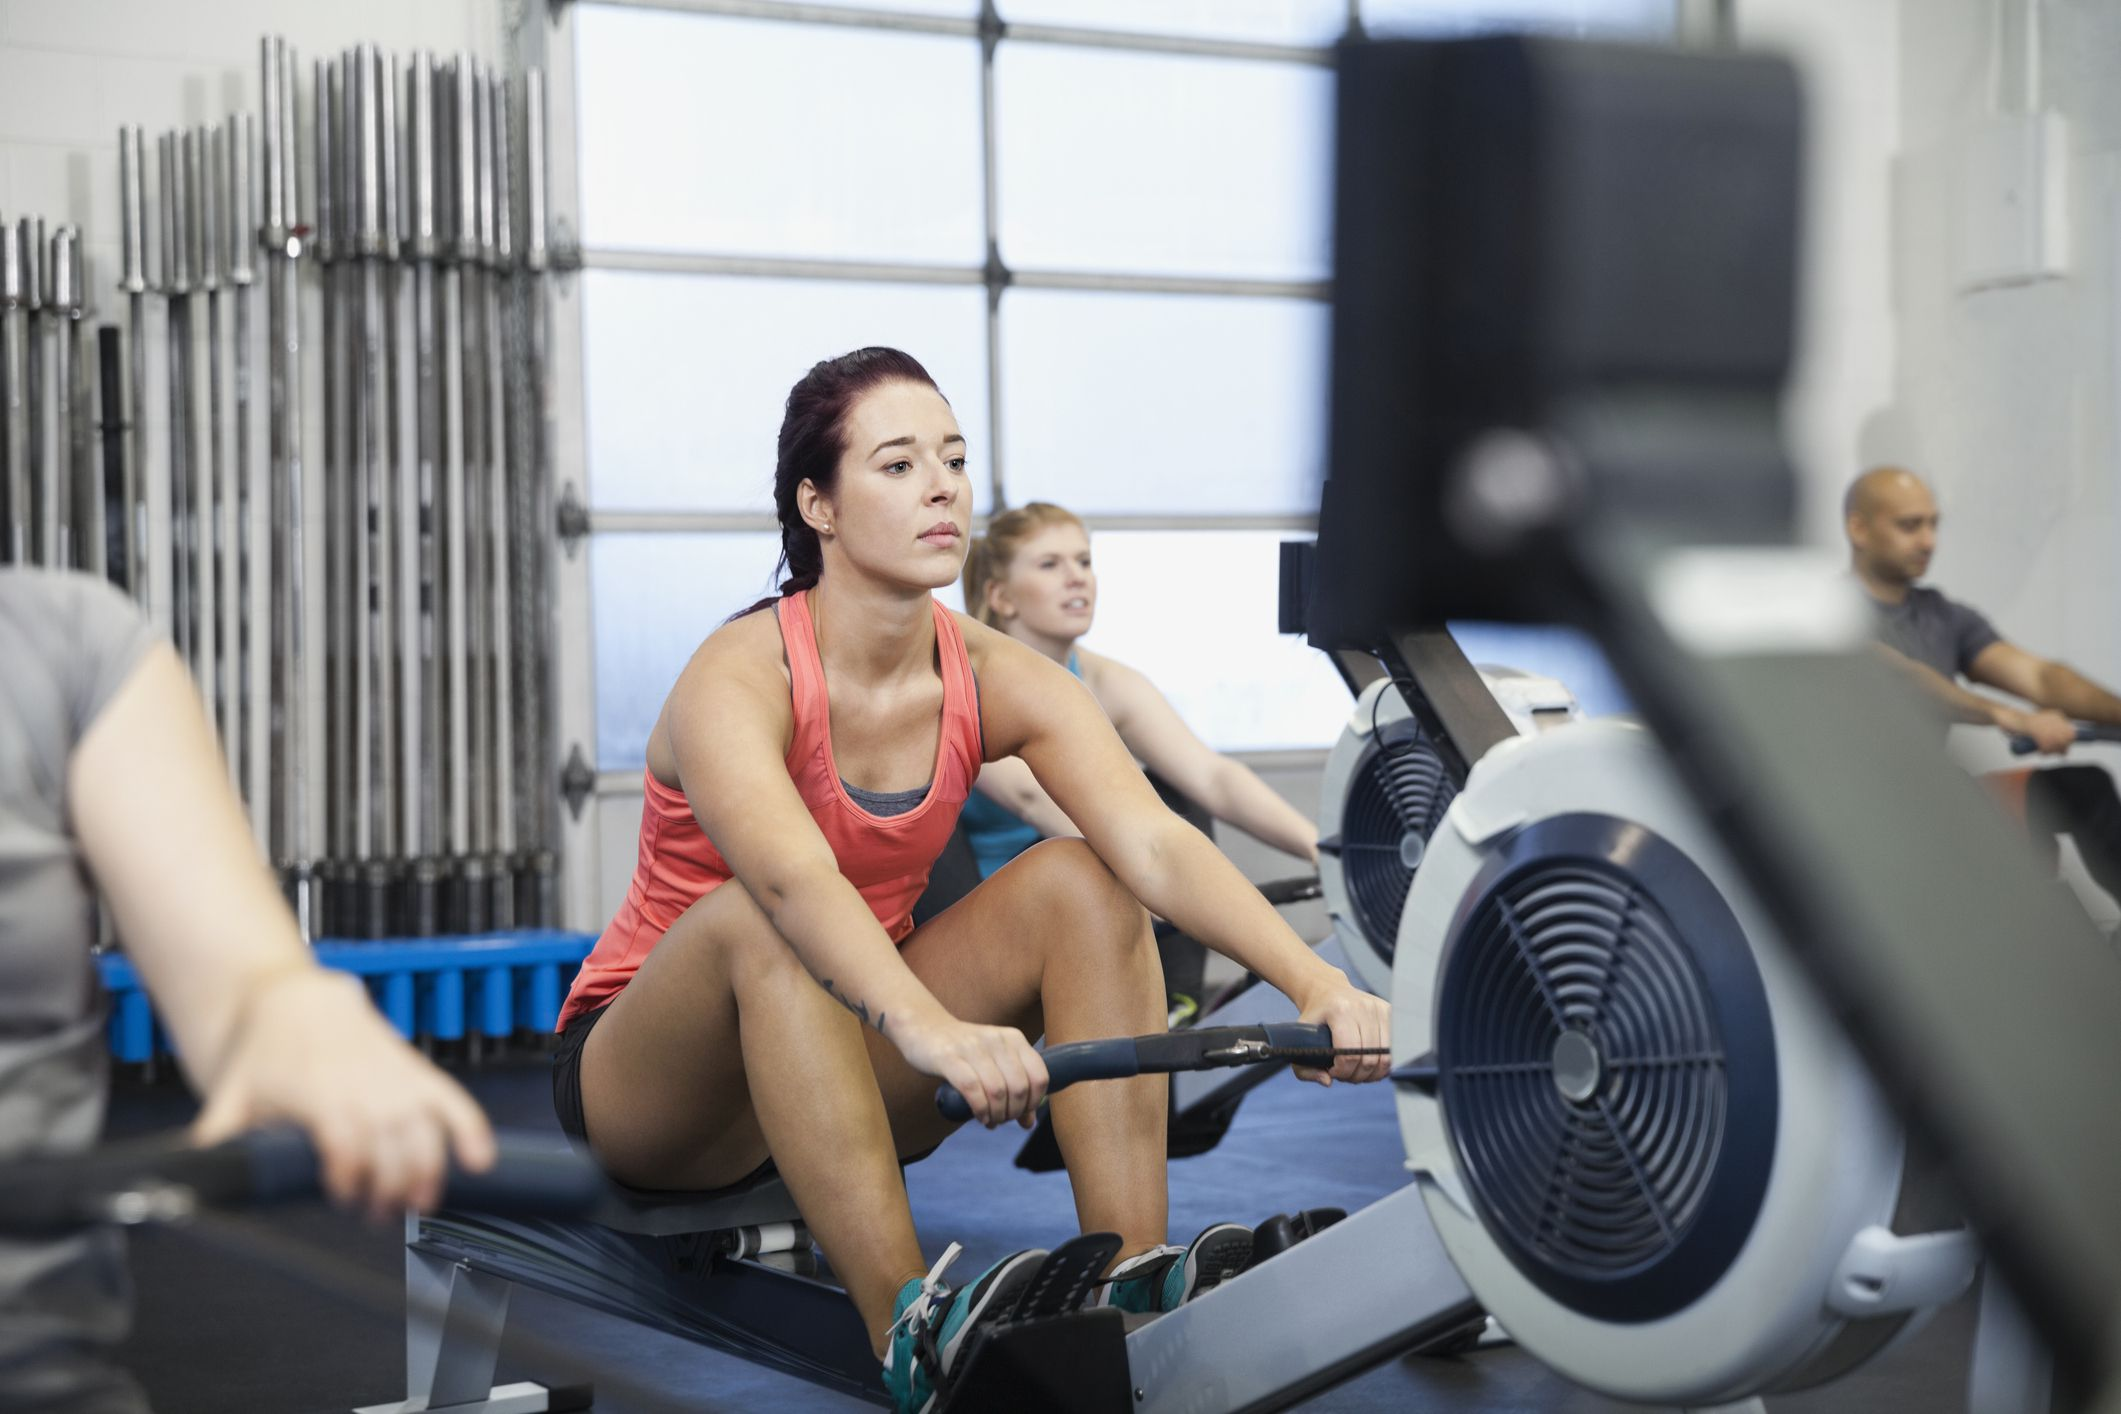 Why You Should Add Cardio to Your Workout Routine